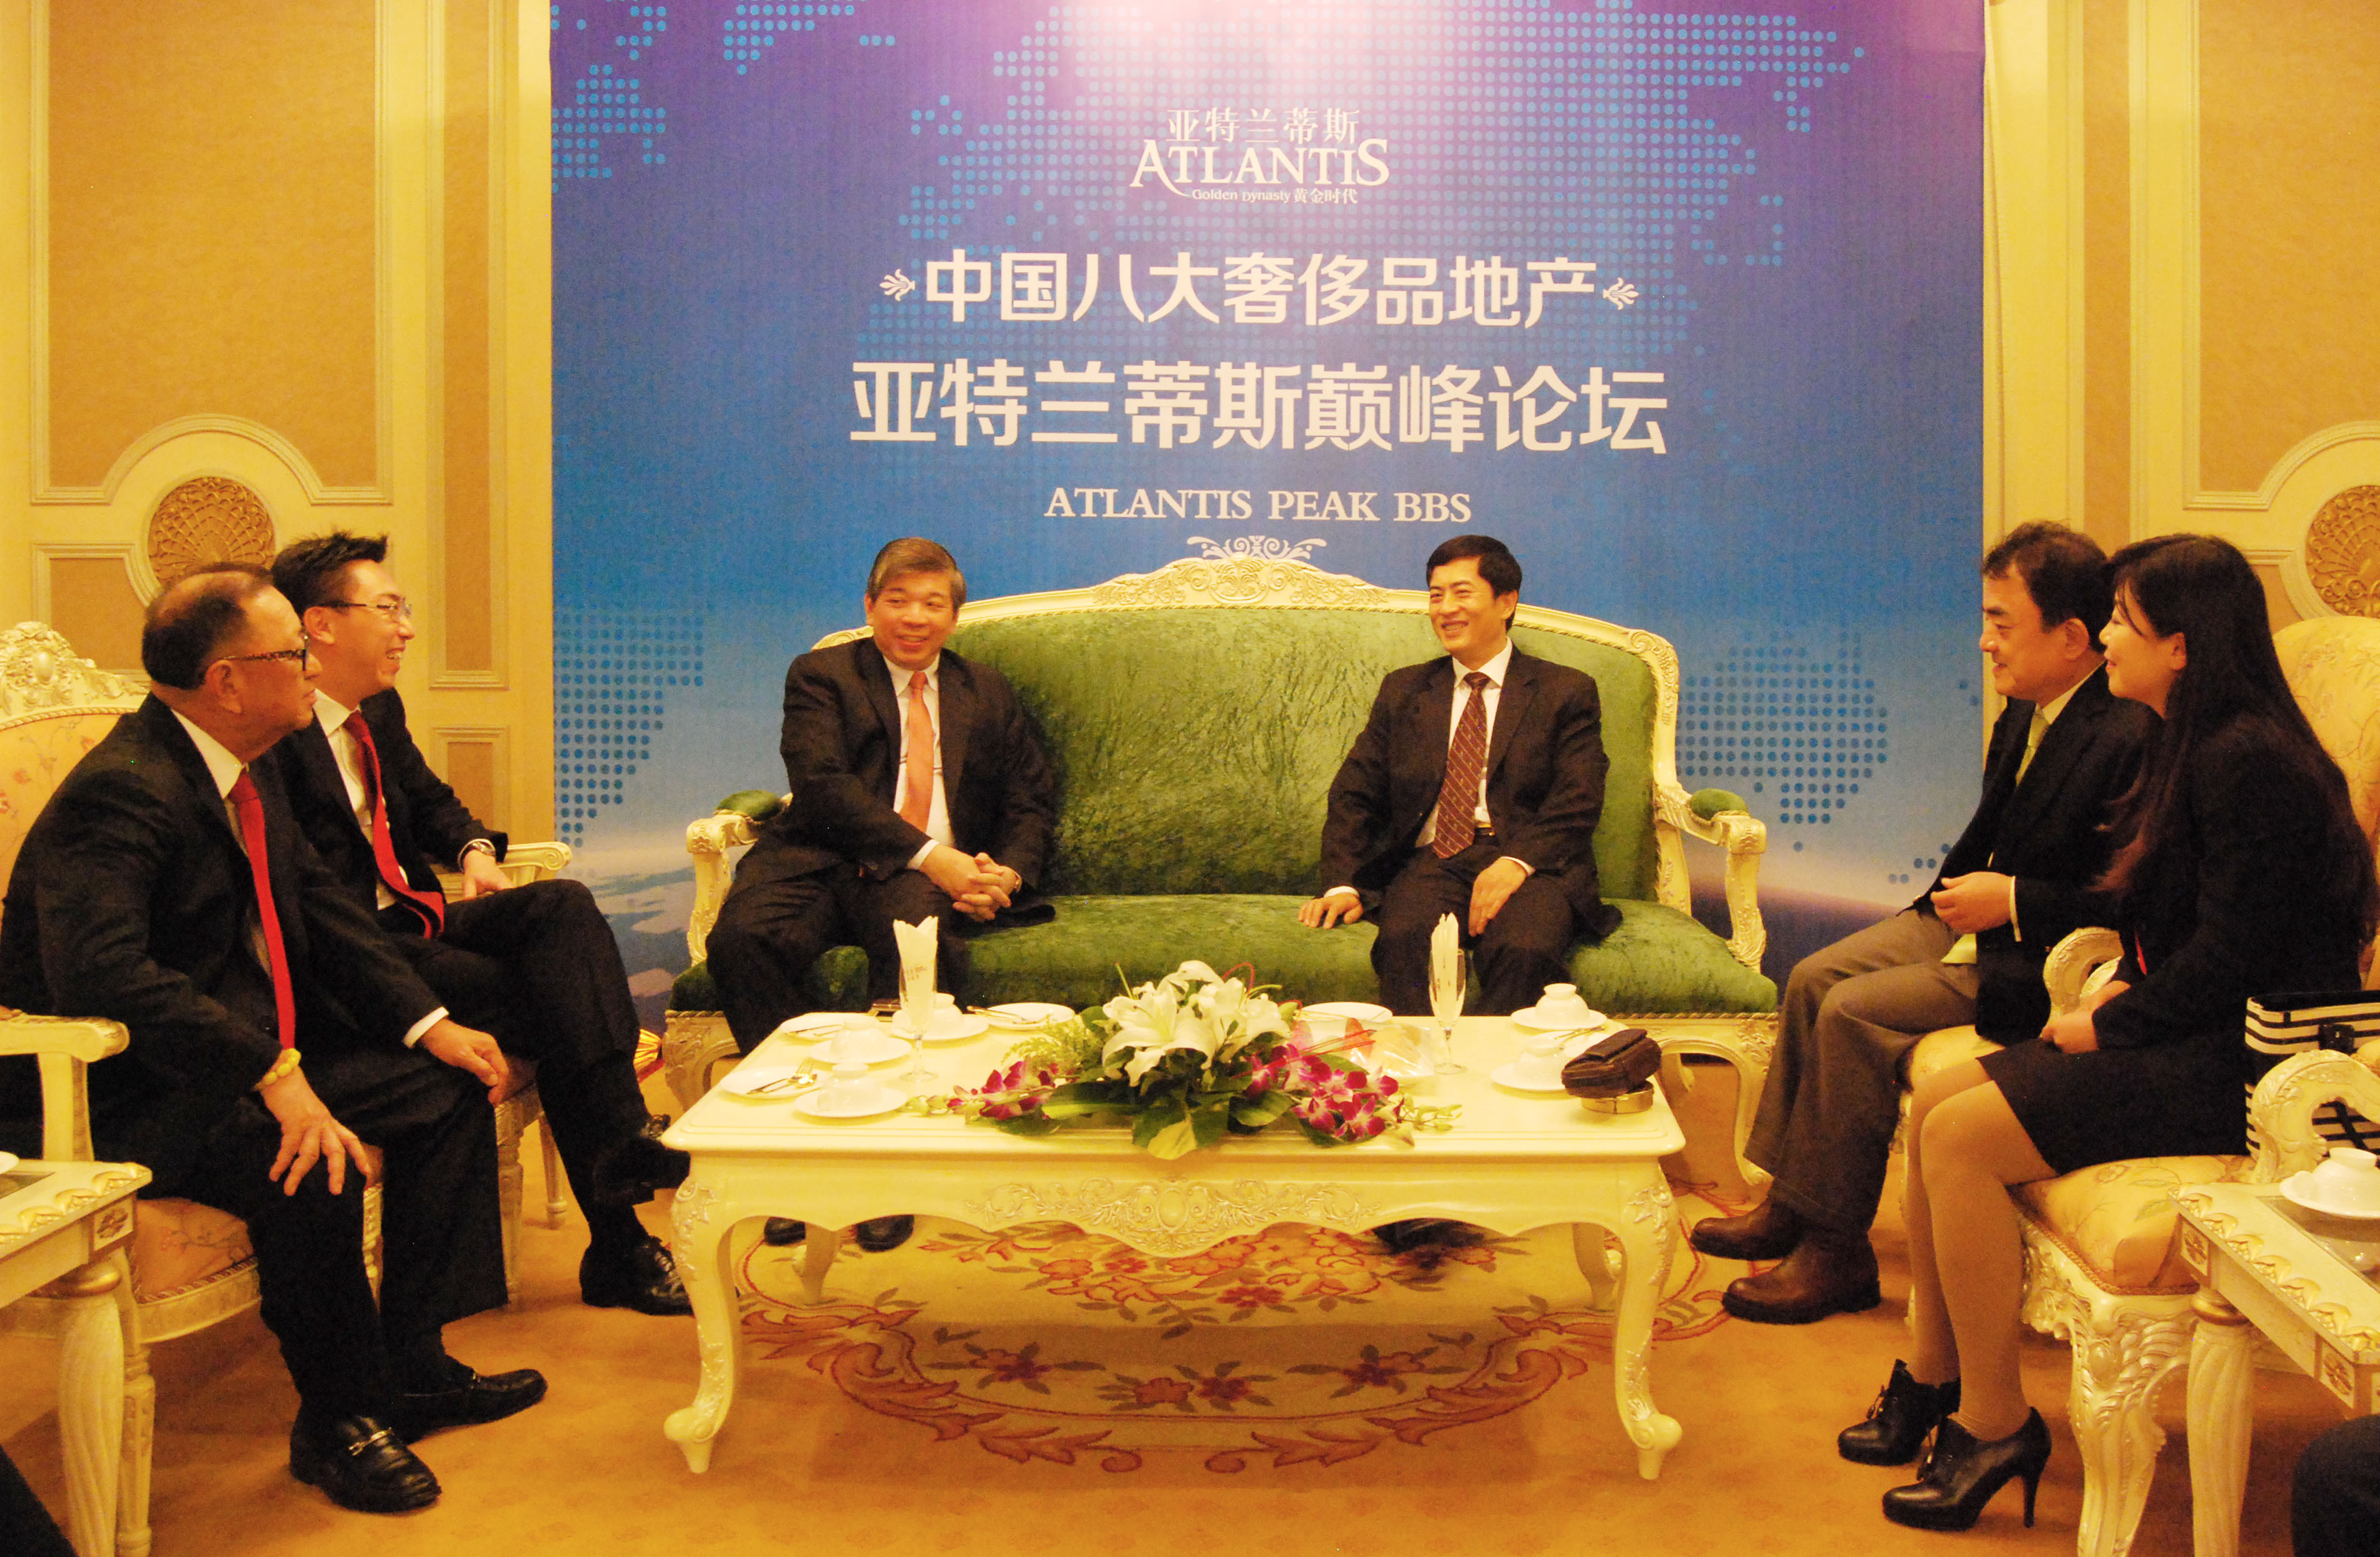 President Bin Chen sitting with President Songsheng Zhang of the Singapore Chinese Chamber of Commerce